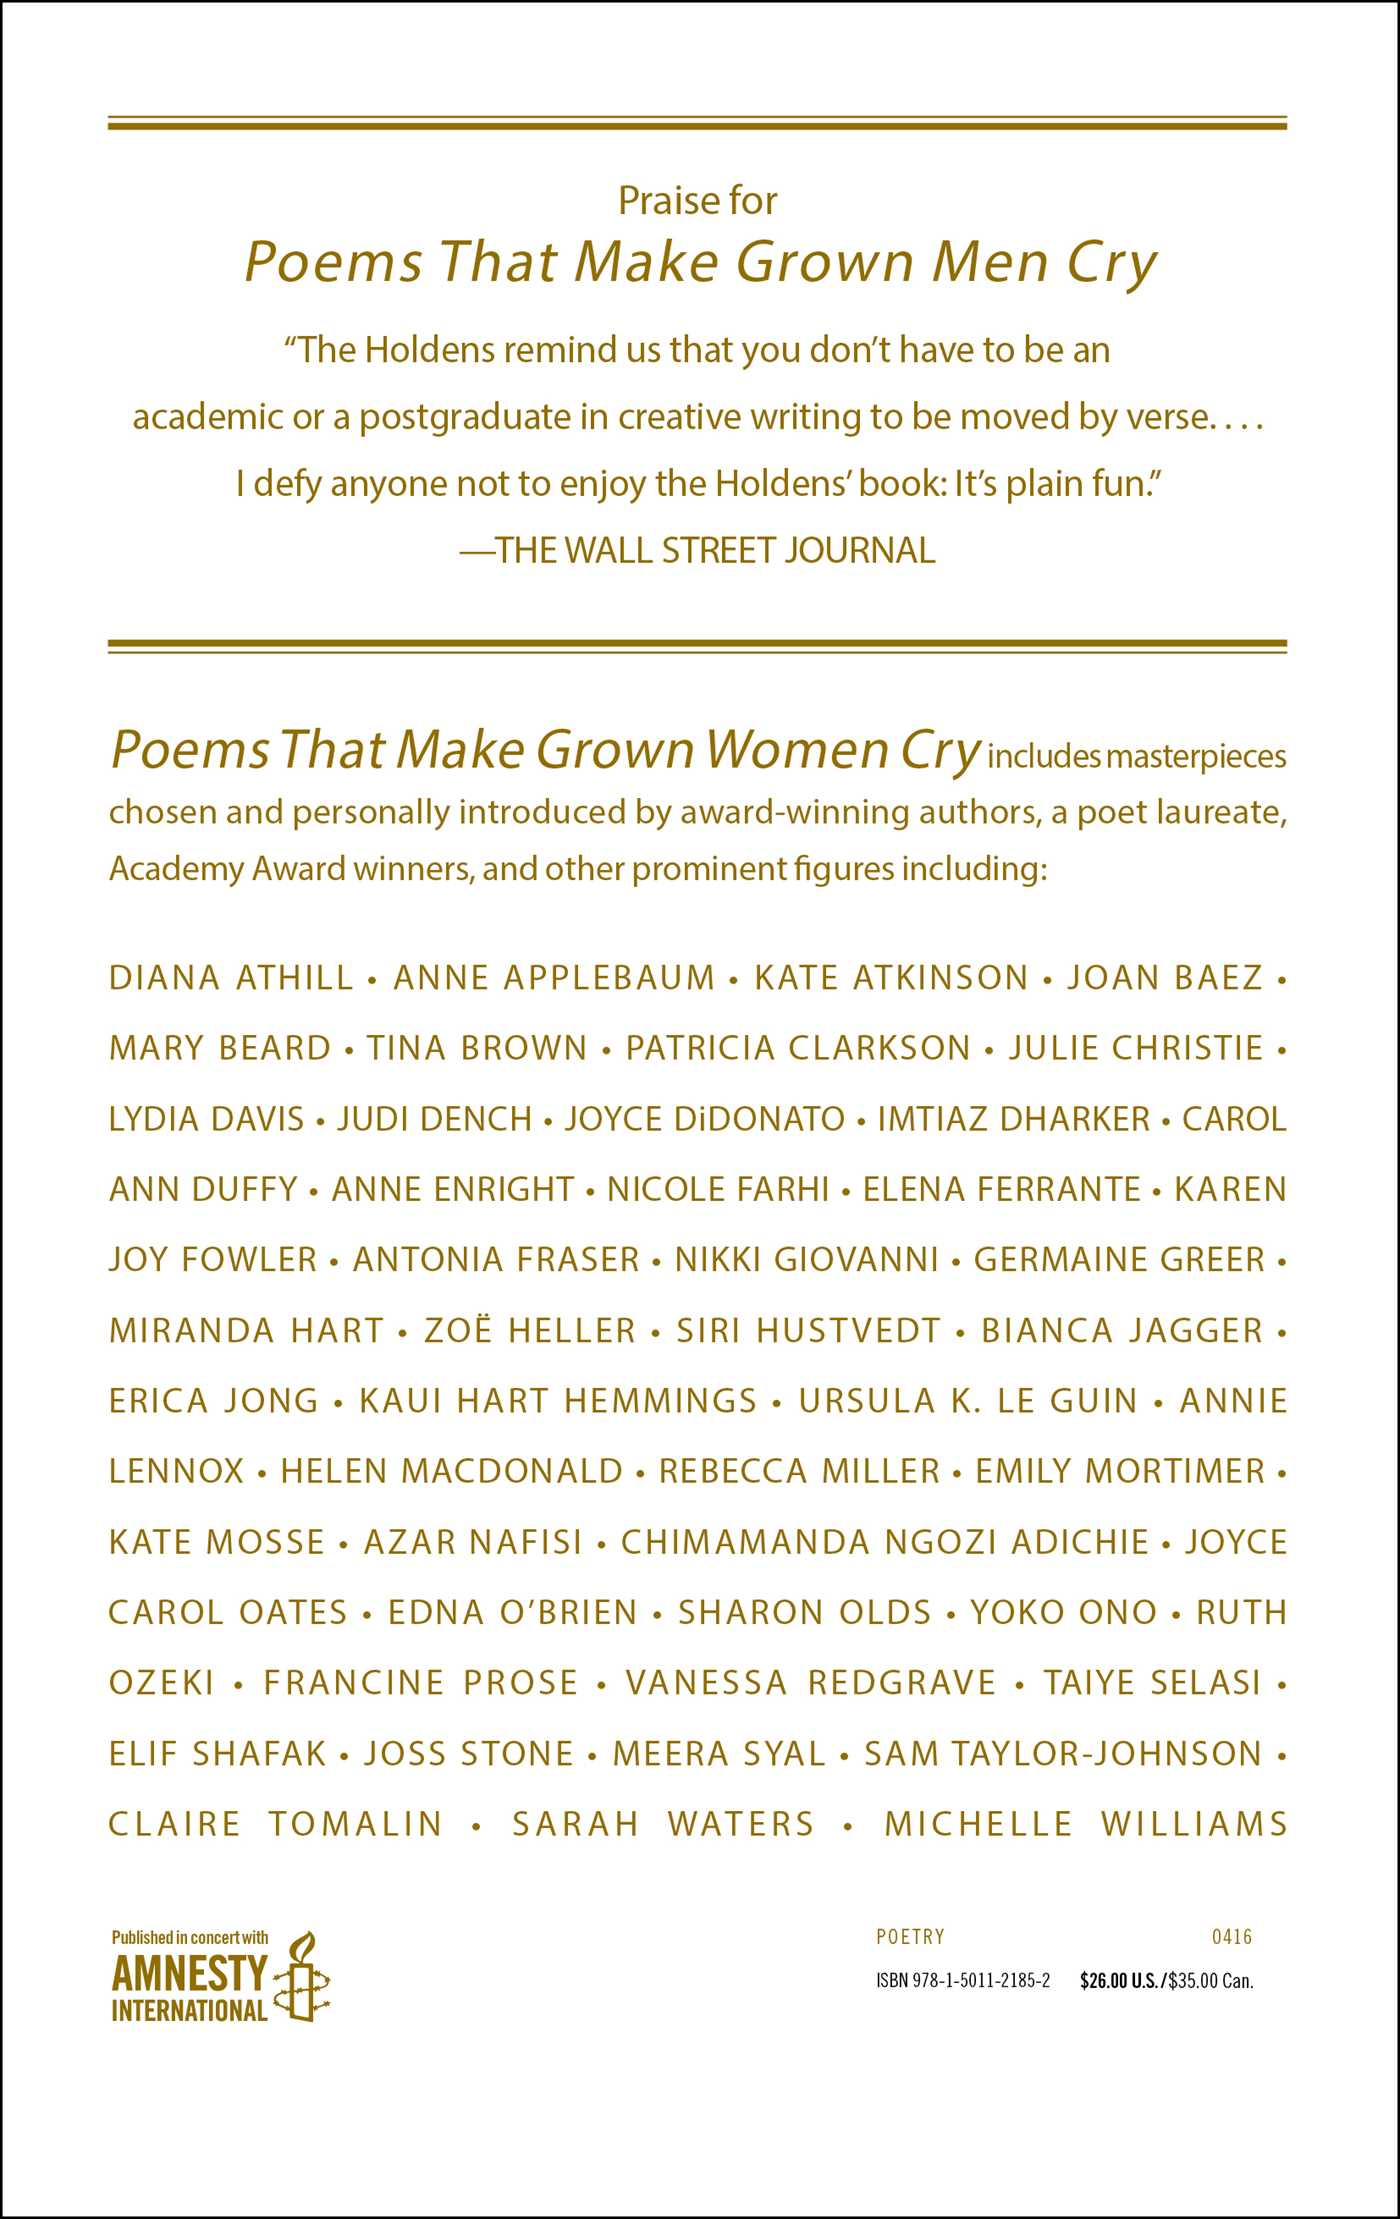 Poems that make grown women cry 9781501121852 hr back